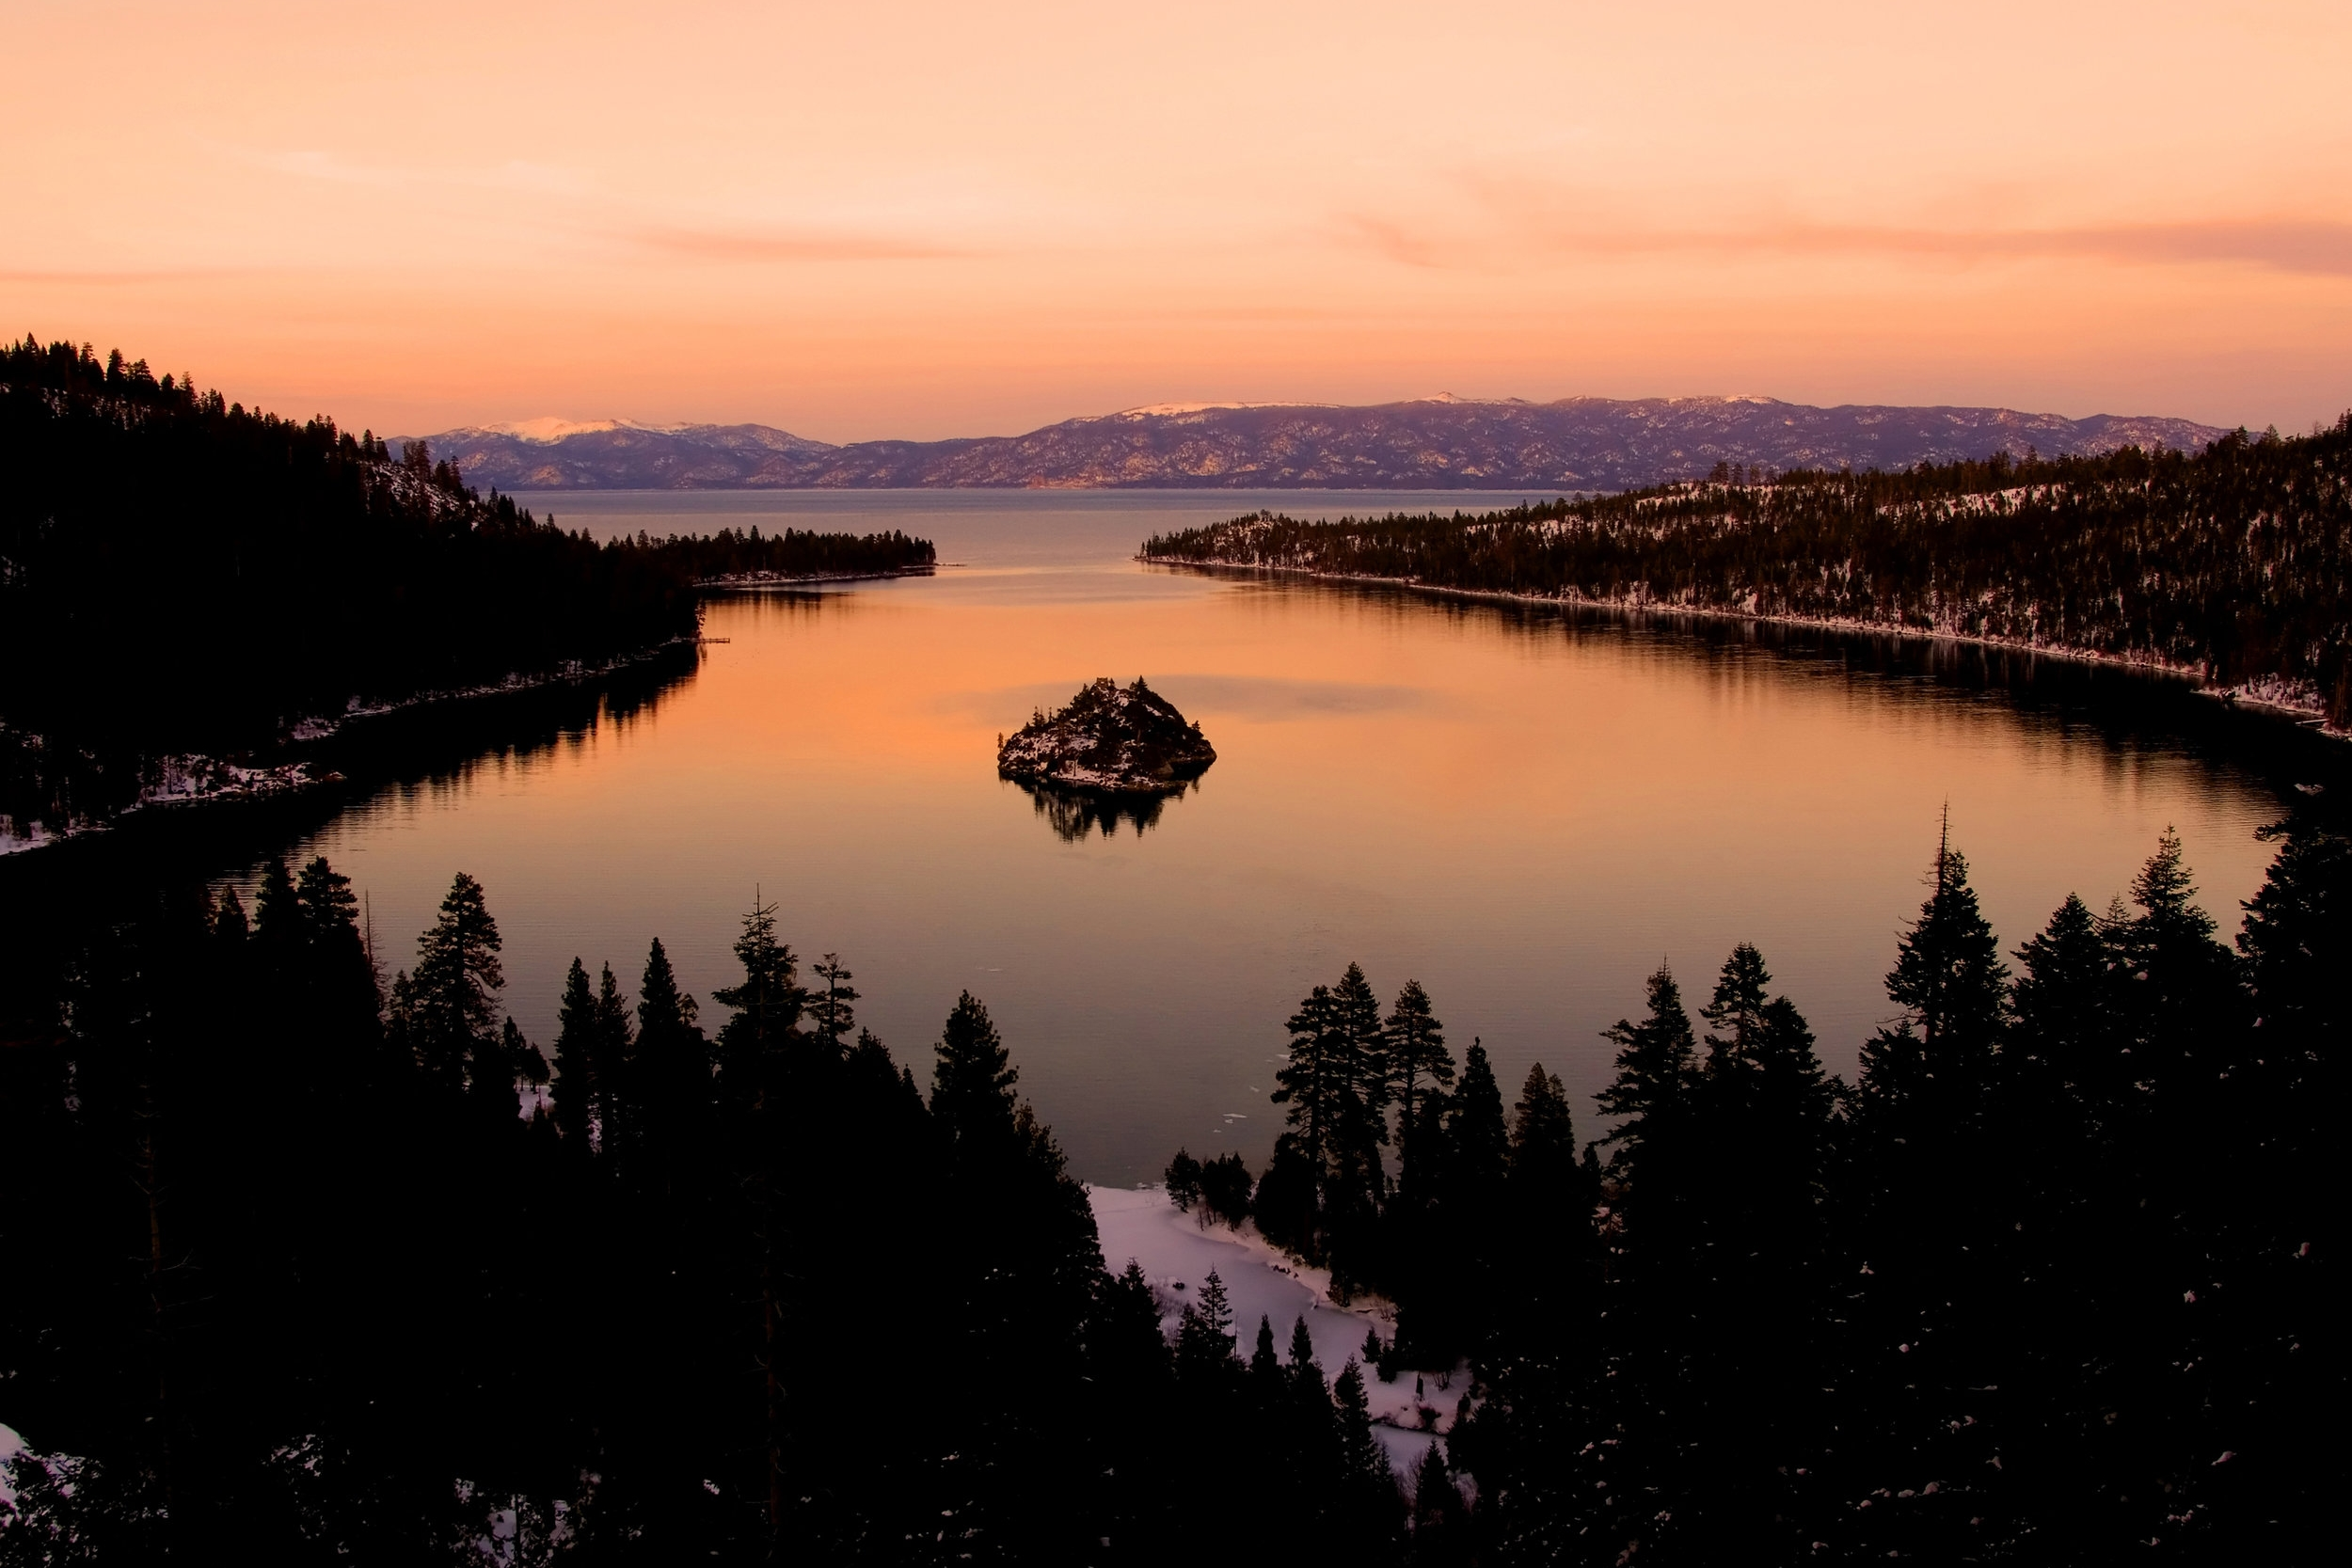 bigstock-Emerald-Bay-Lake-Tahoe-4121640.jpg